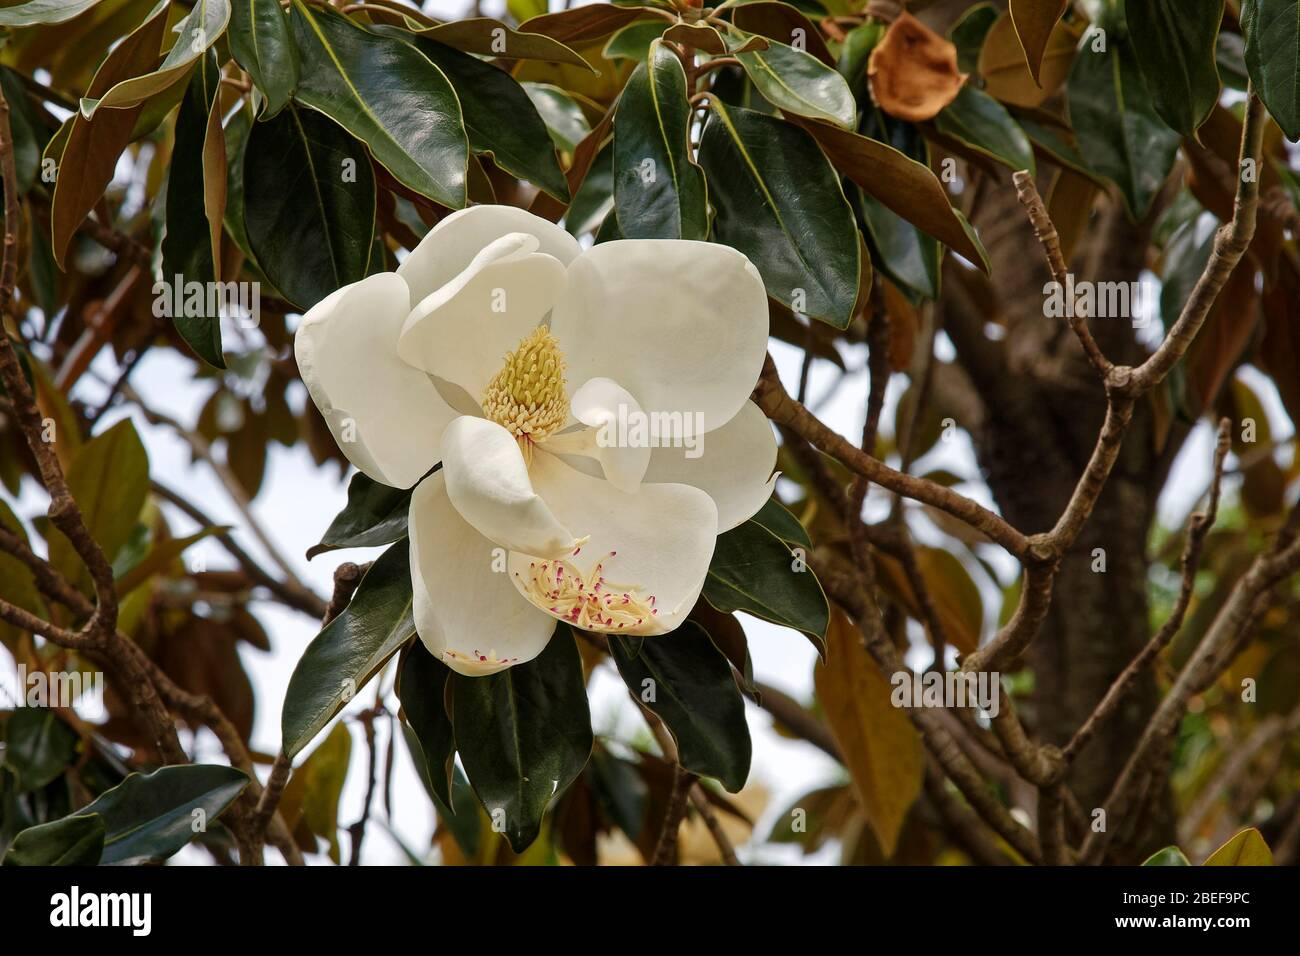 MAGNOLIA BLOSSOM GATHERING IN THE SOUTH ANTIQUE FLOWERS